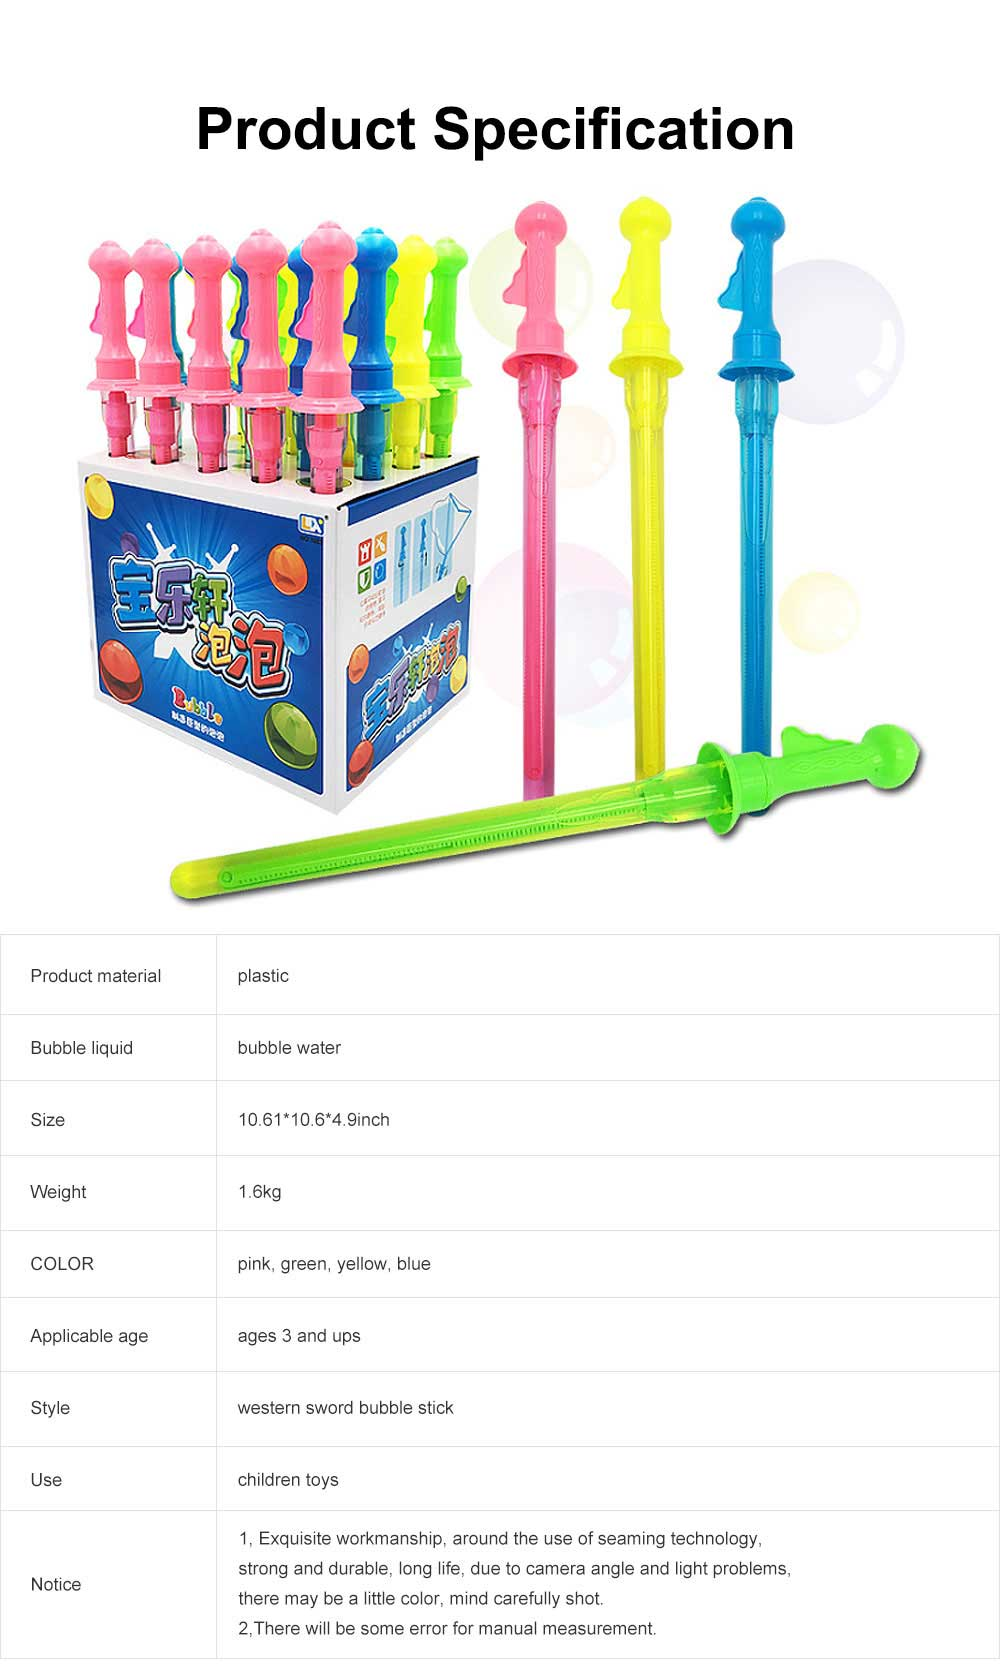 Children's Colorful Bubble Water Western Sword Bubble Stick Outdoor Beach Blow Bubble Toy 15 inch 6